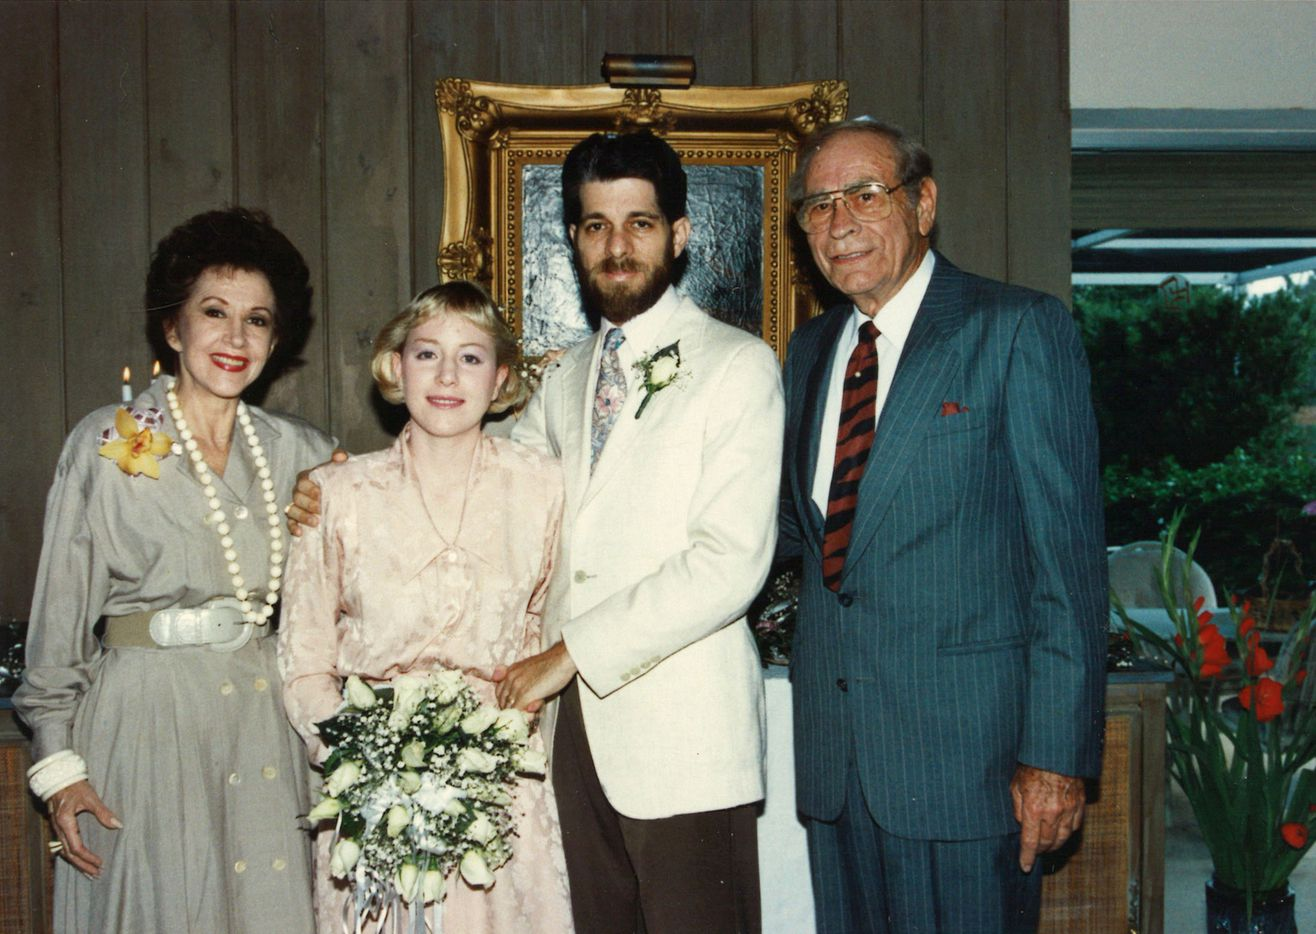 """Jeffrey Weiss and his wife Marni, on the occasion of what they called their """"first wedding"""" in May 1990. (They held a second ceremony later that year.) With them are Jeffrey's parents, Lenore and Sherburt Weiss."""